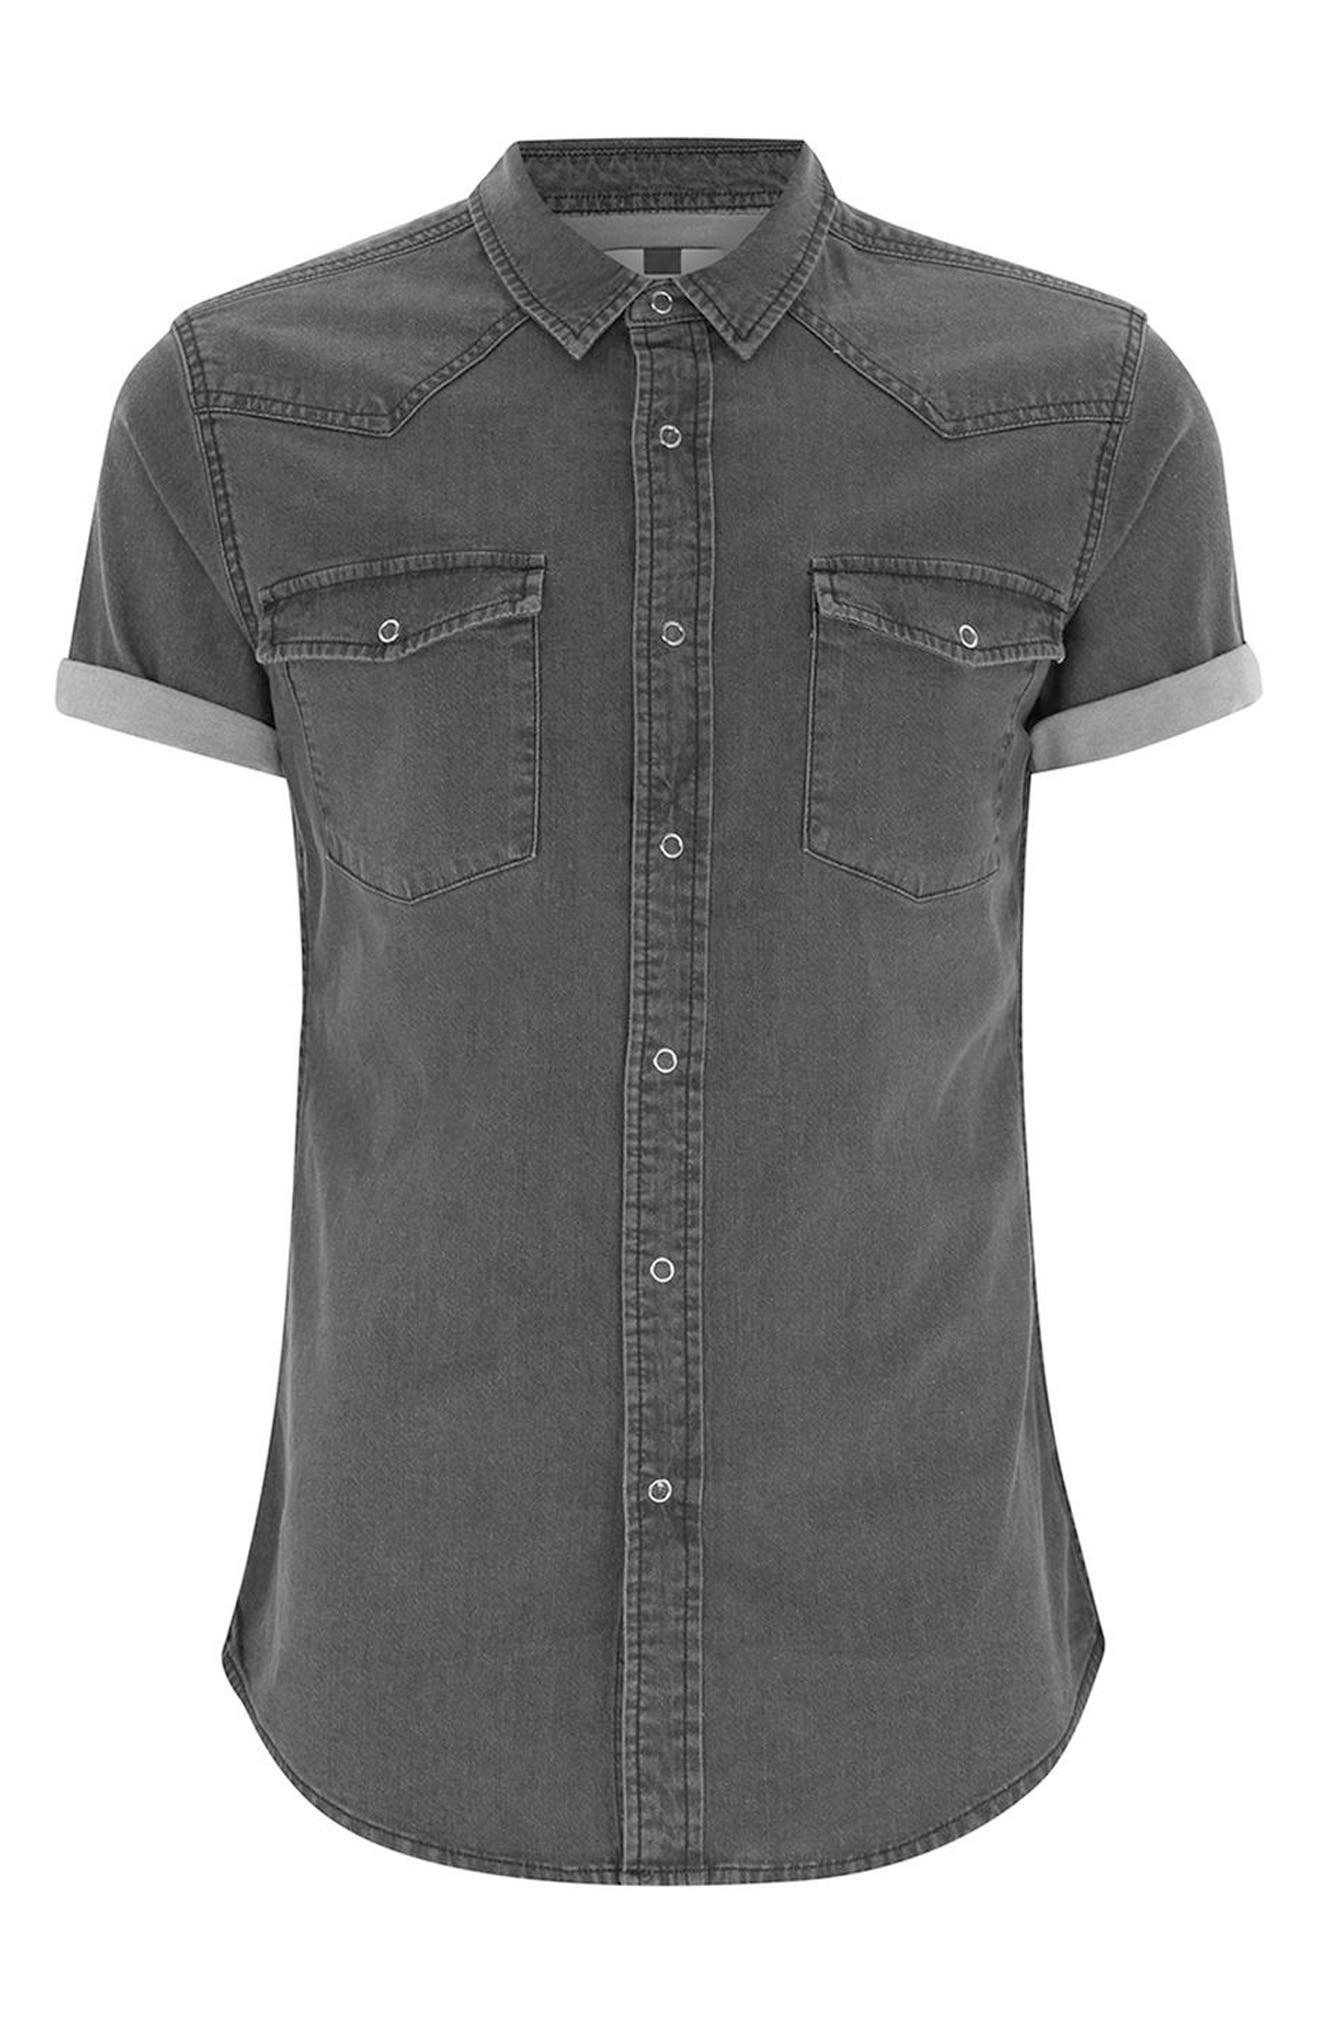 Muscle Fit Denim Shirt,                             Alternate thumbnail 4, color,                             001